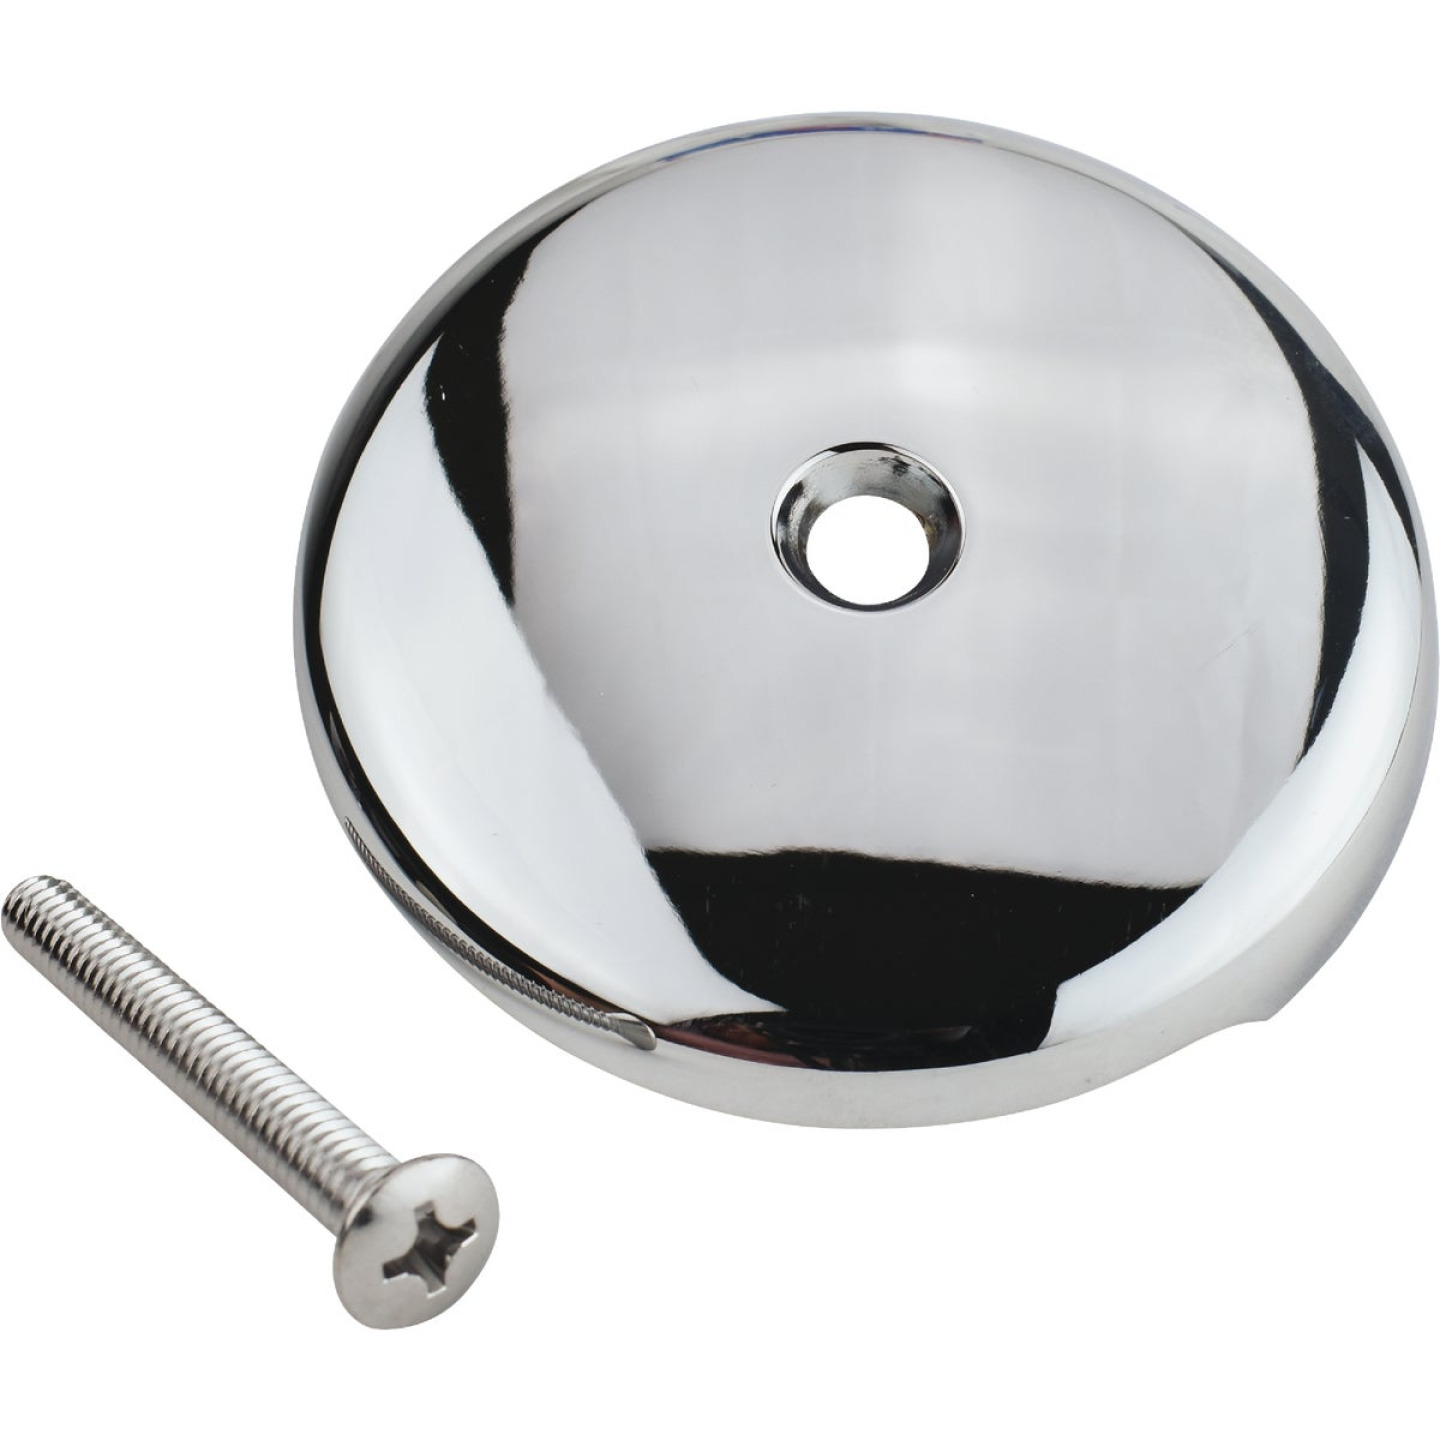 Do it One-Hole Chrome Bath Drain Face Plate Image 1